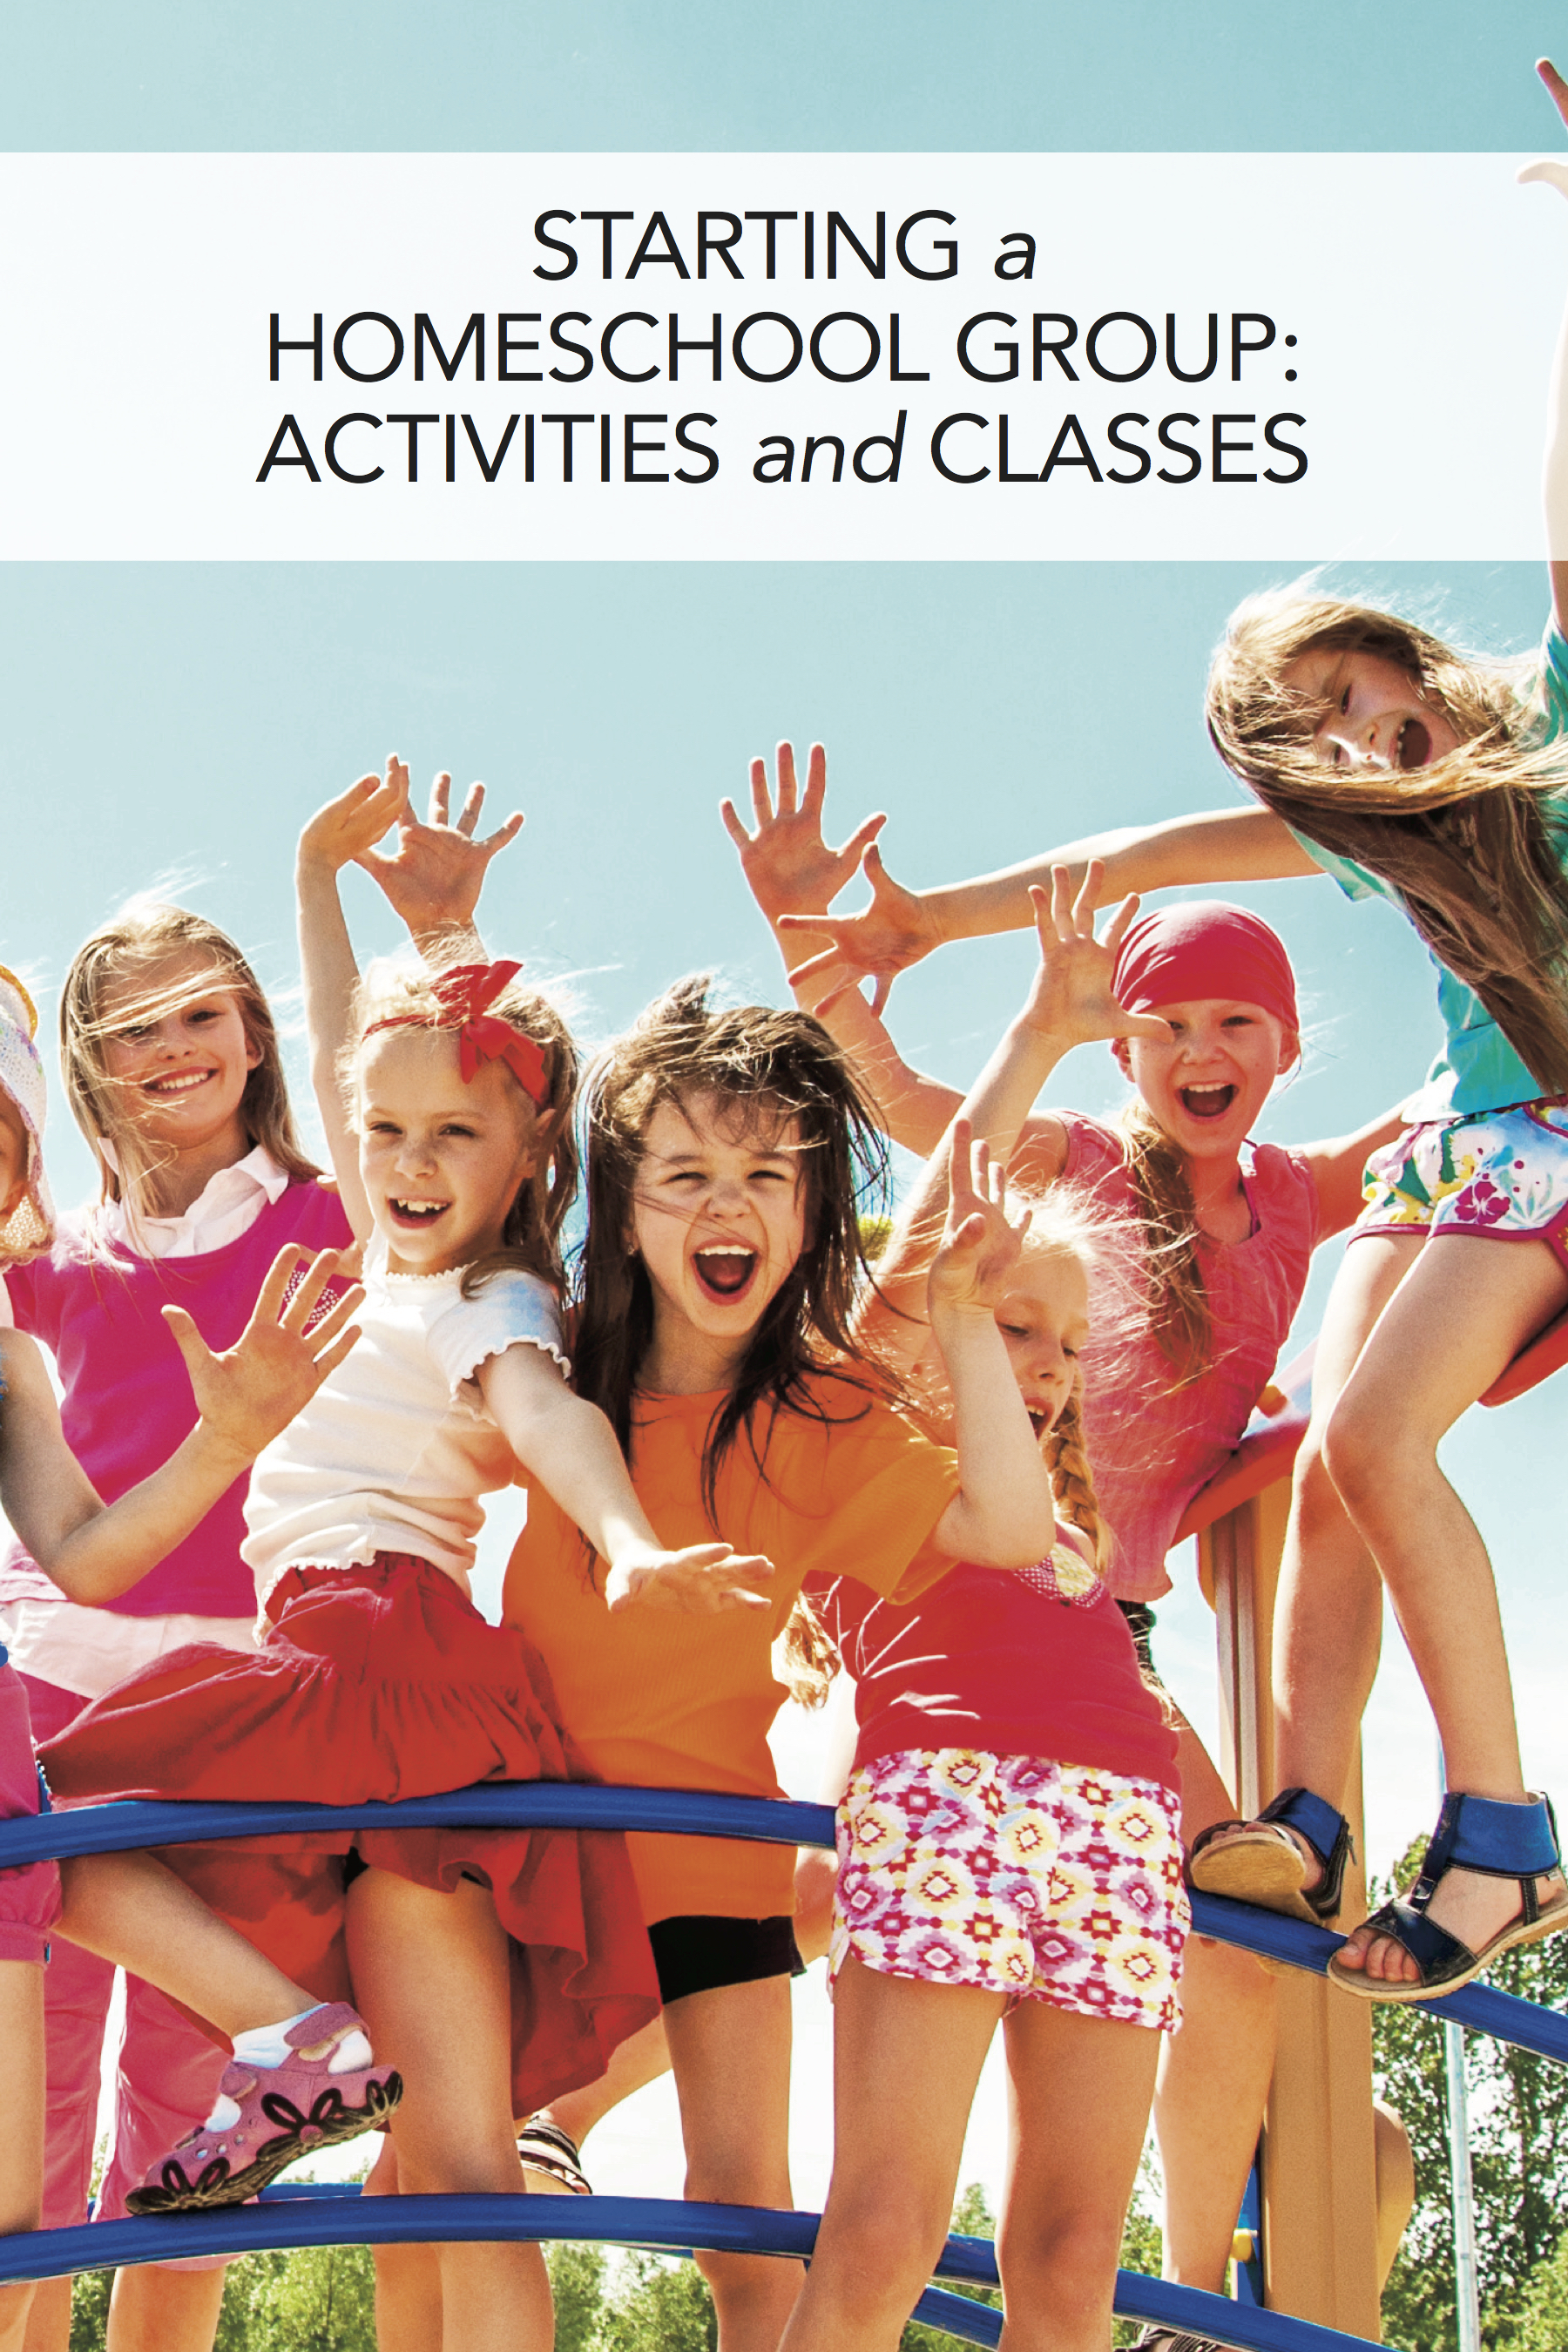 How to Start a Homeschool Group: Part 2: How to Organize Field Trips, Classes, and Co-Ops